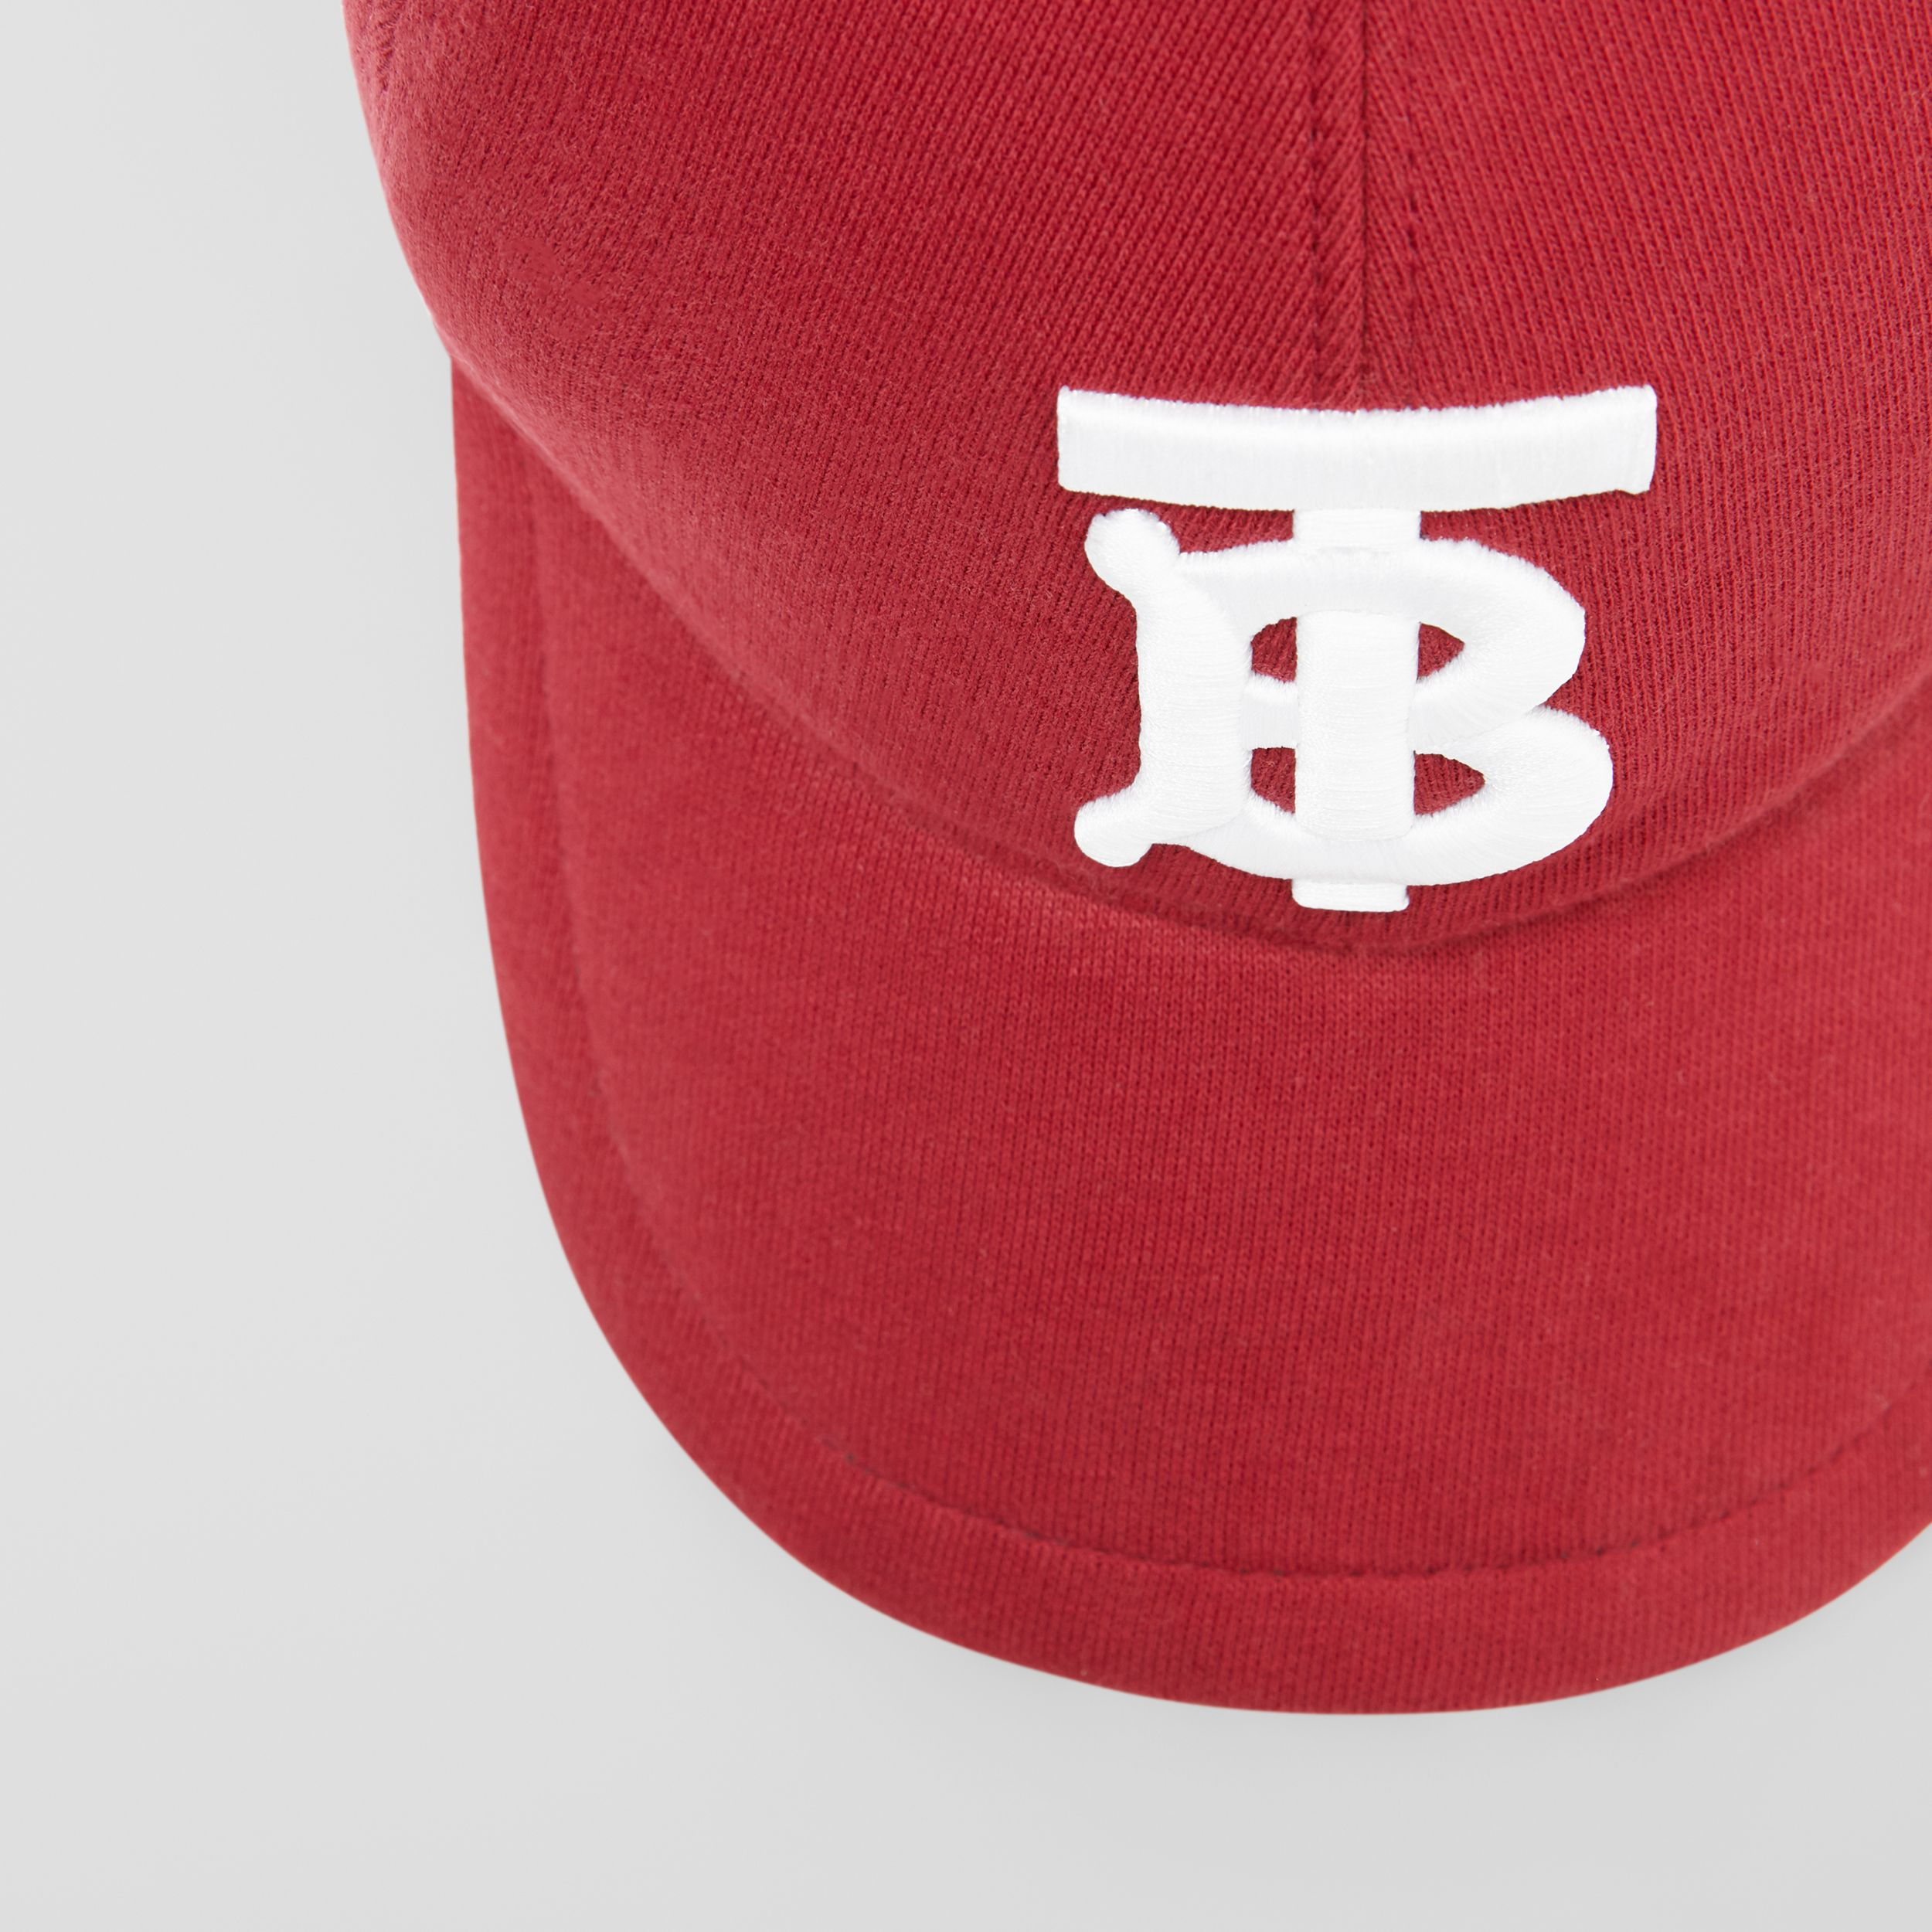 Monogram Motif Jersey Baseball Cap in Dark Carmine | Burberry - 2